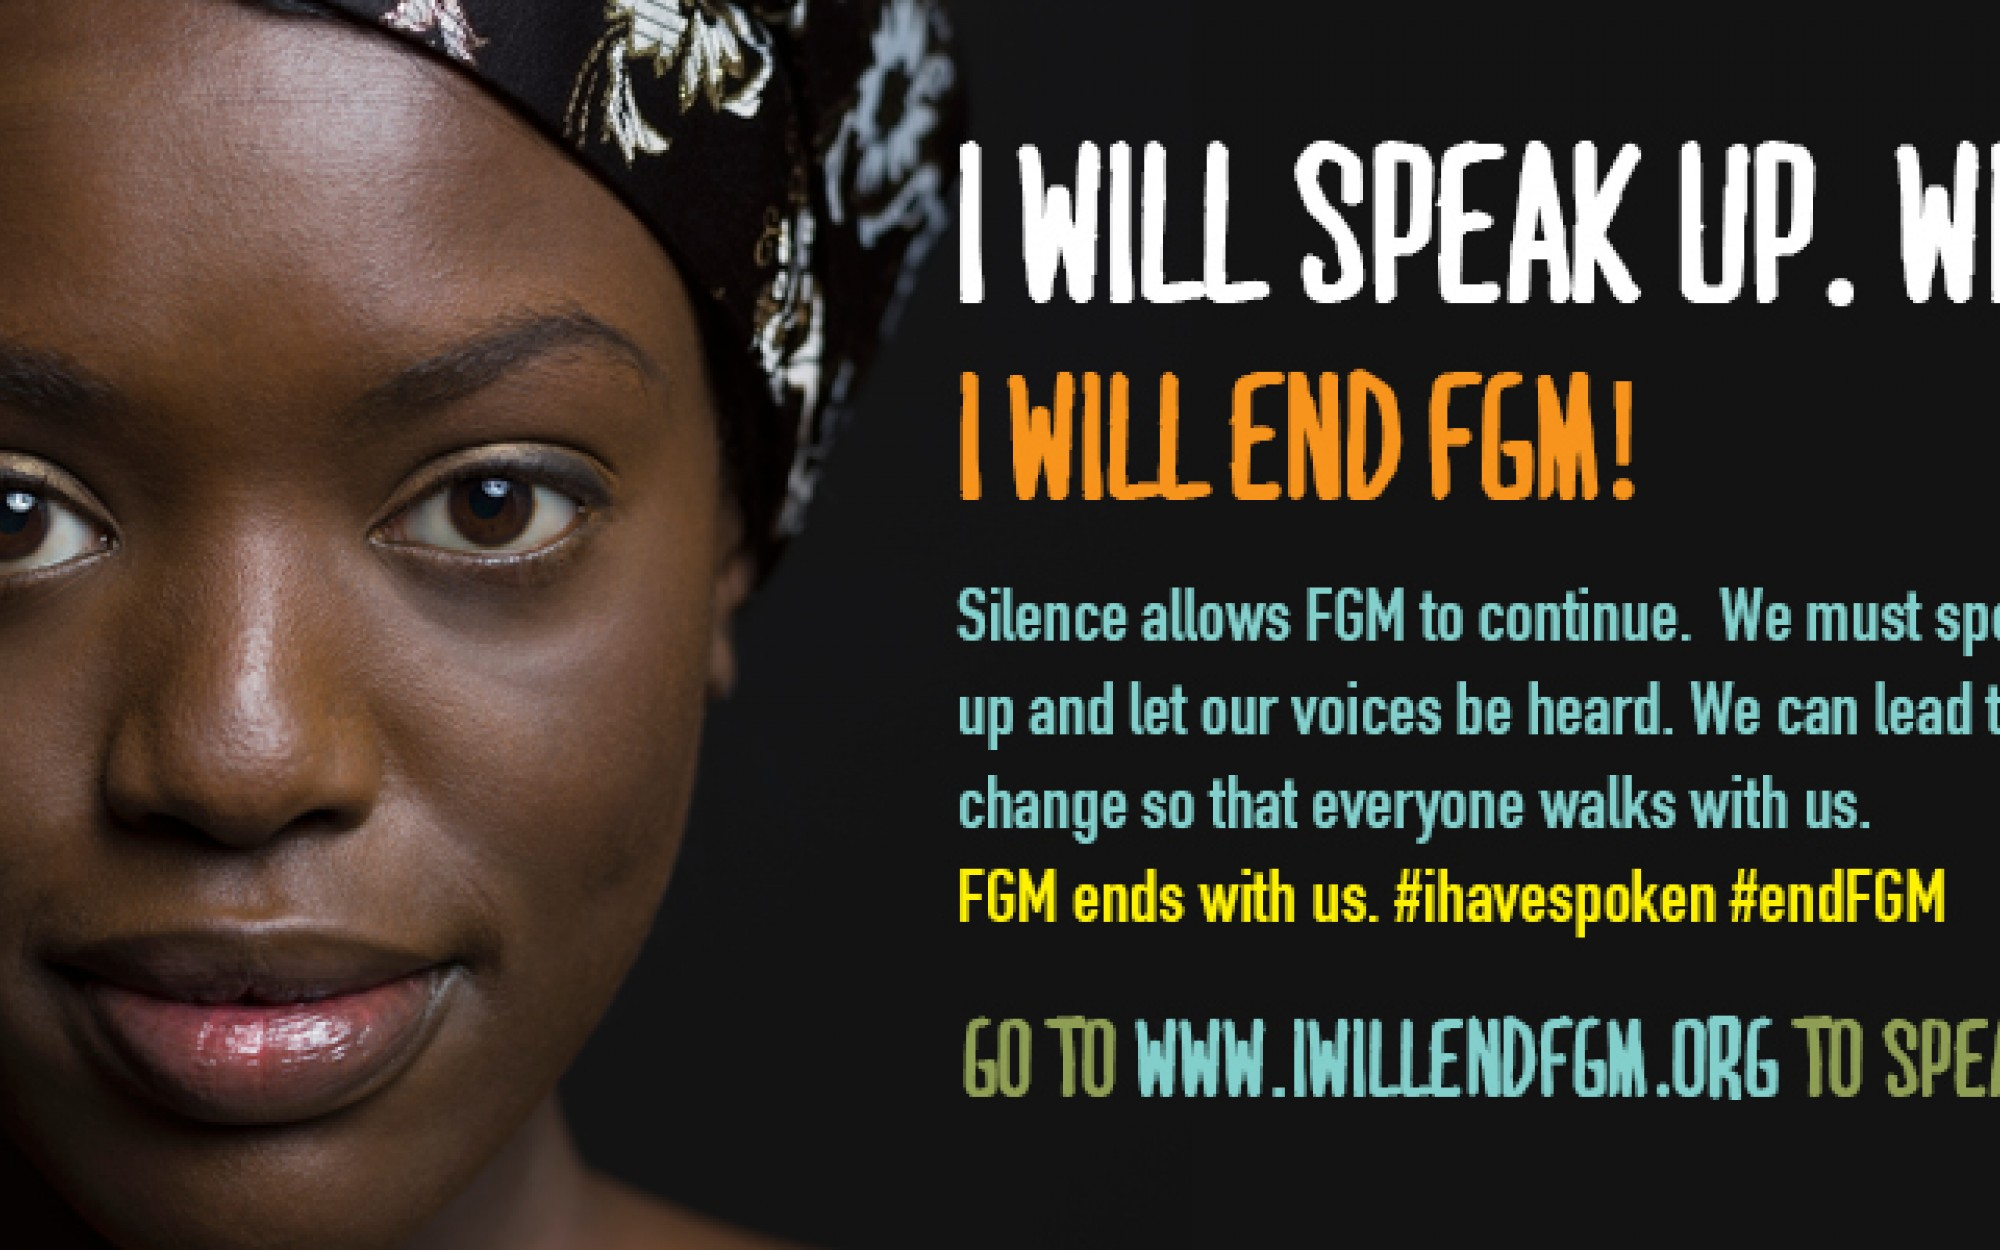 Campaign to End FGM